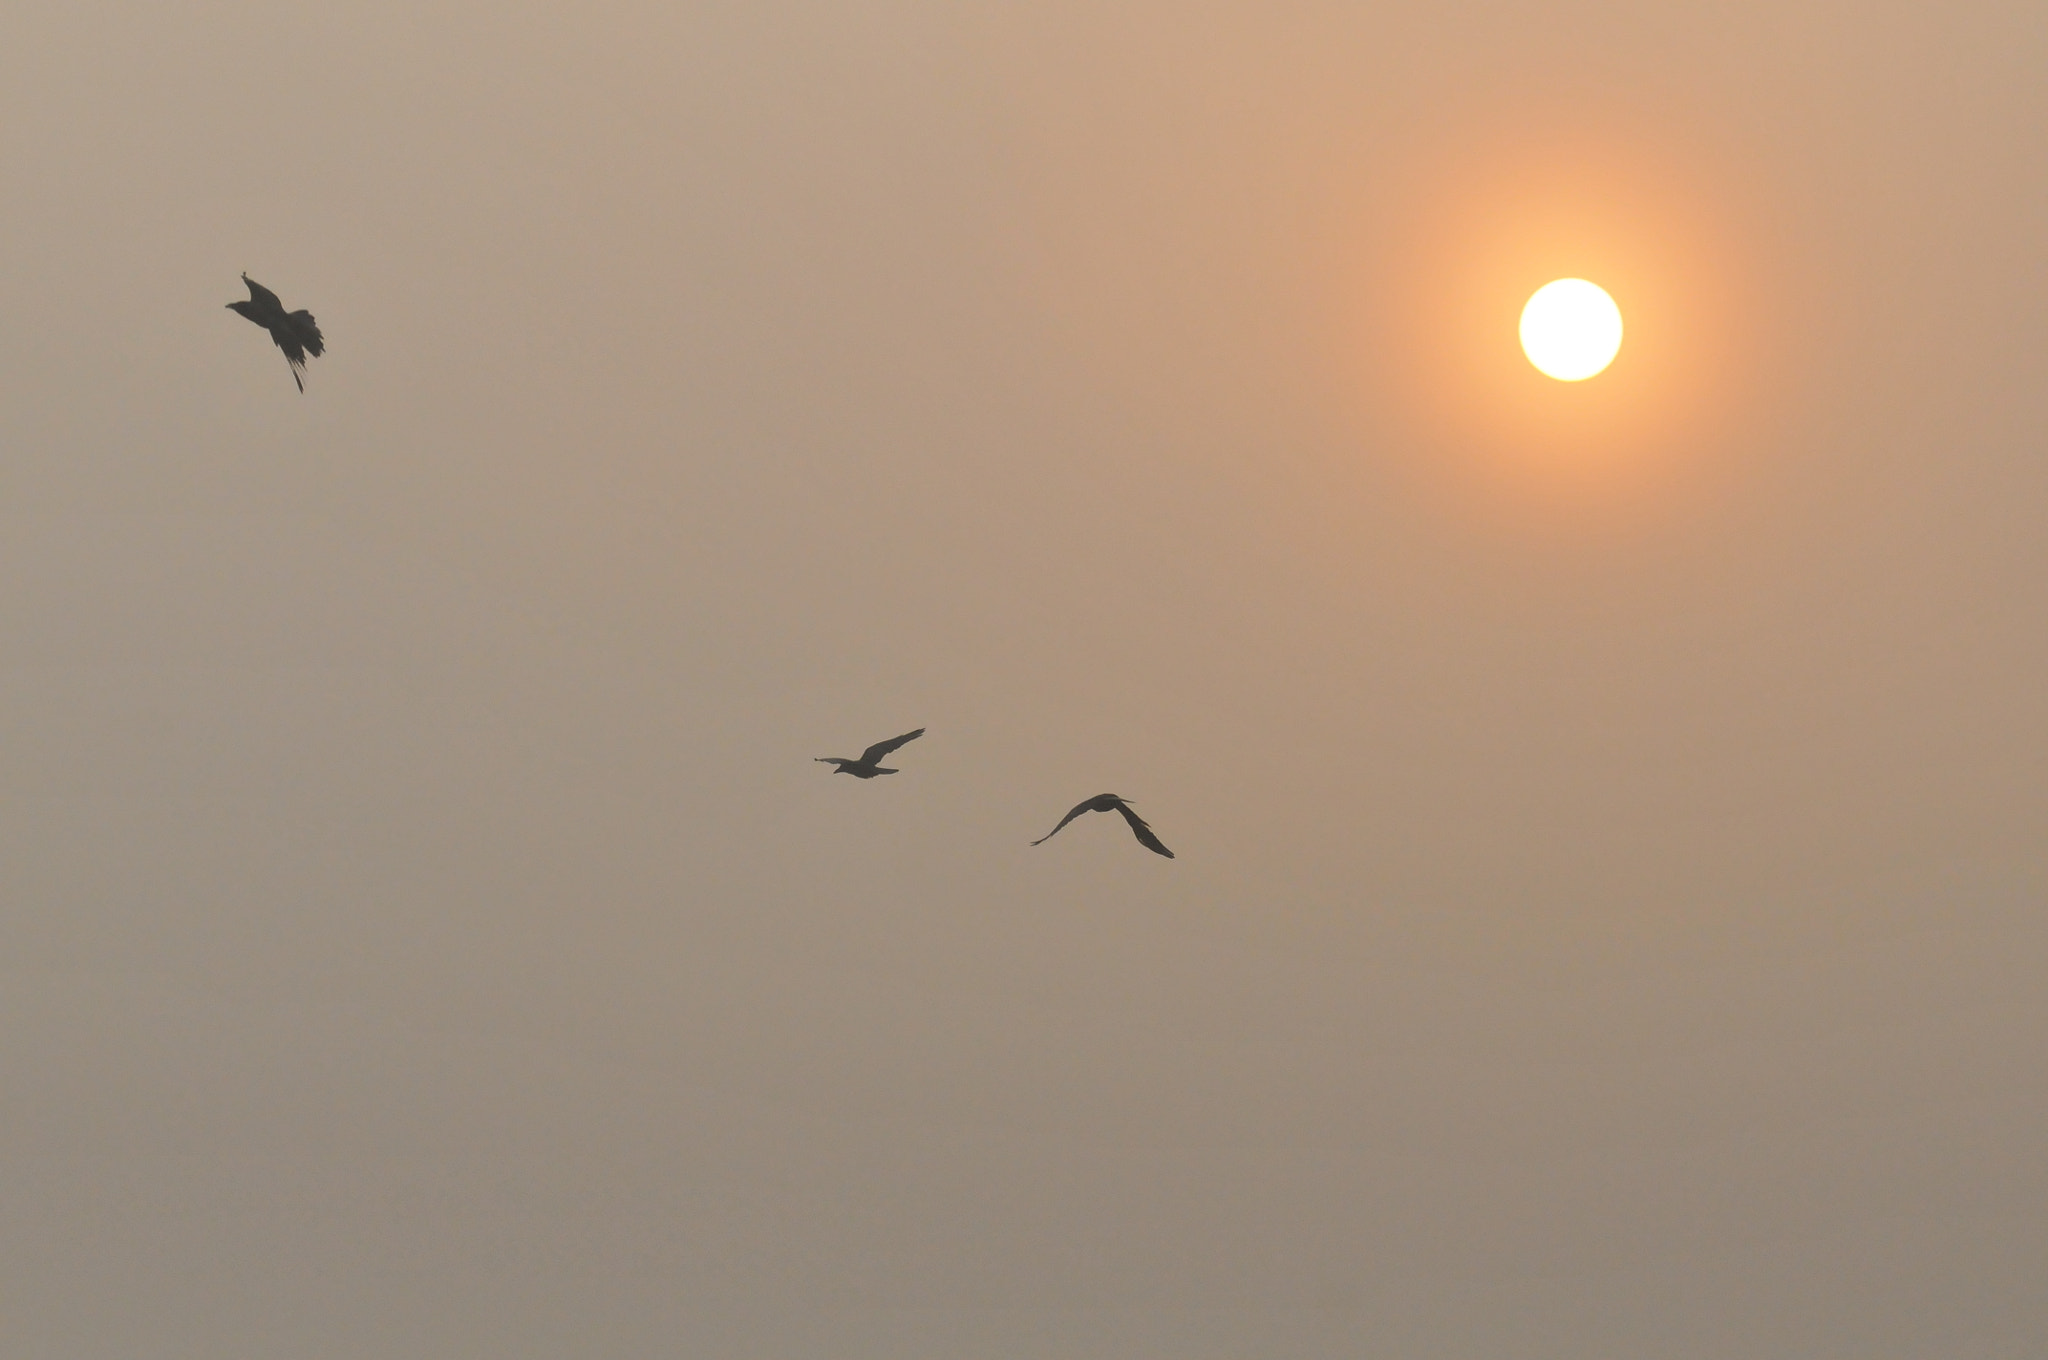 Photograph Sun rise in the mist by mayur gogoi on 500px